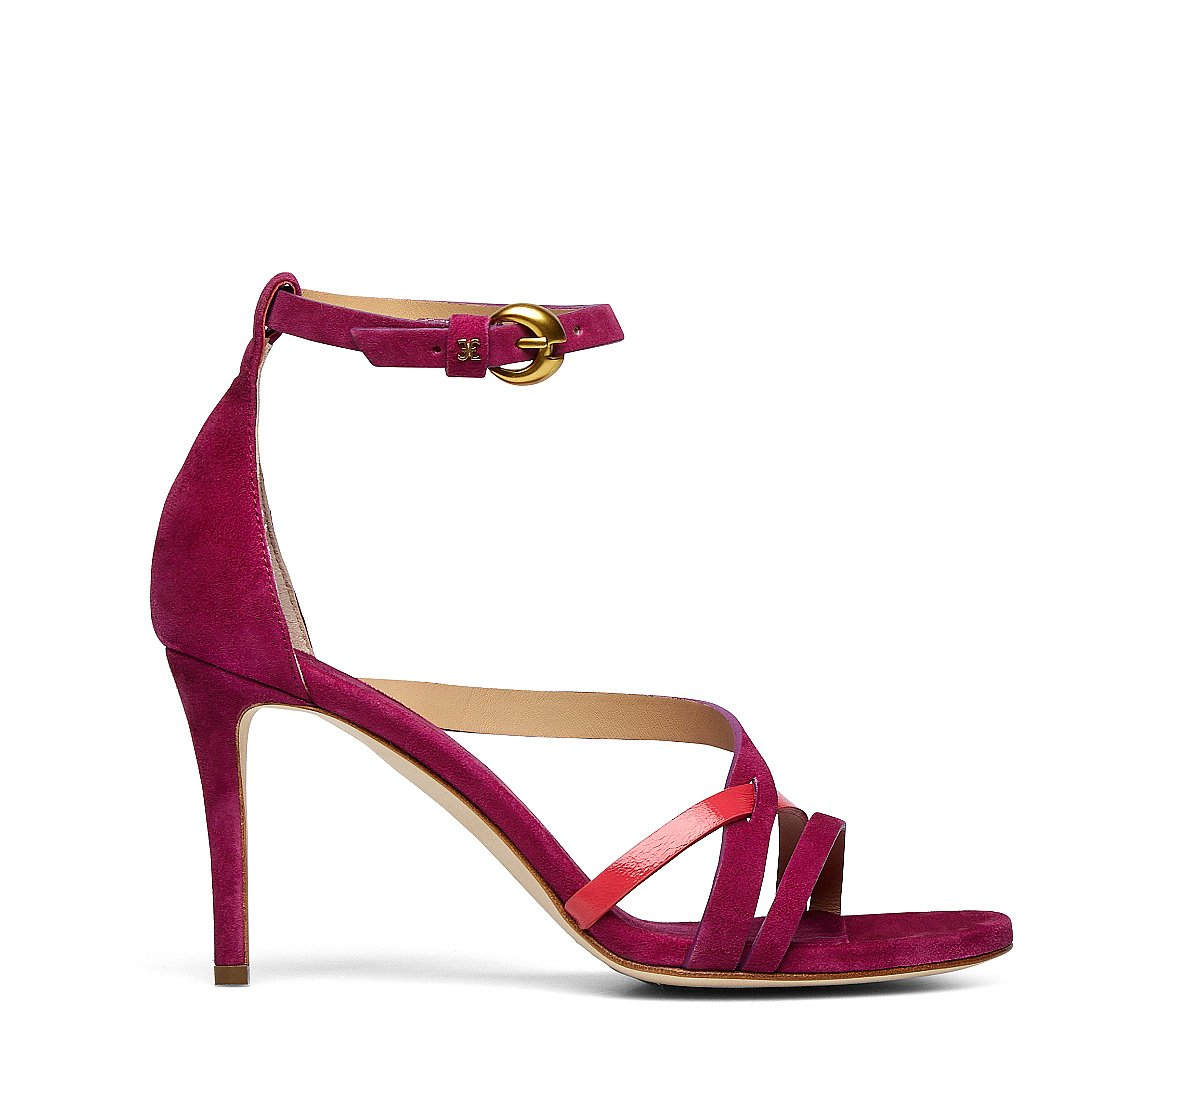 Shiny leather and suede sandals